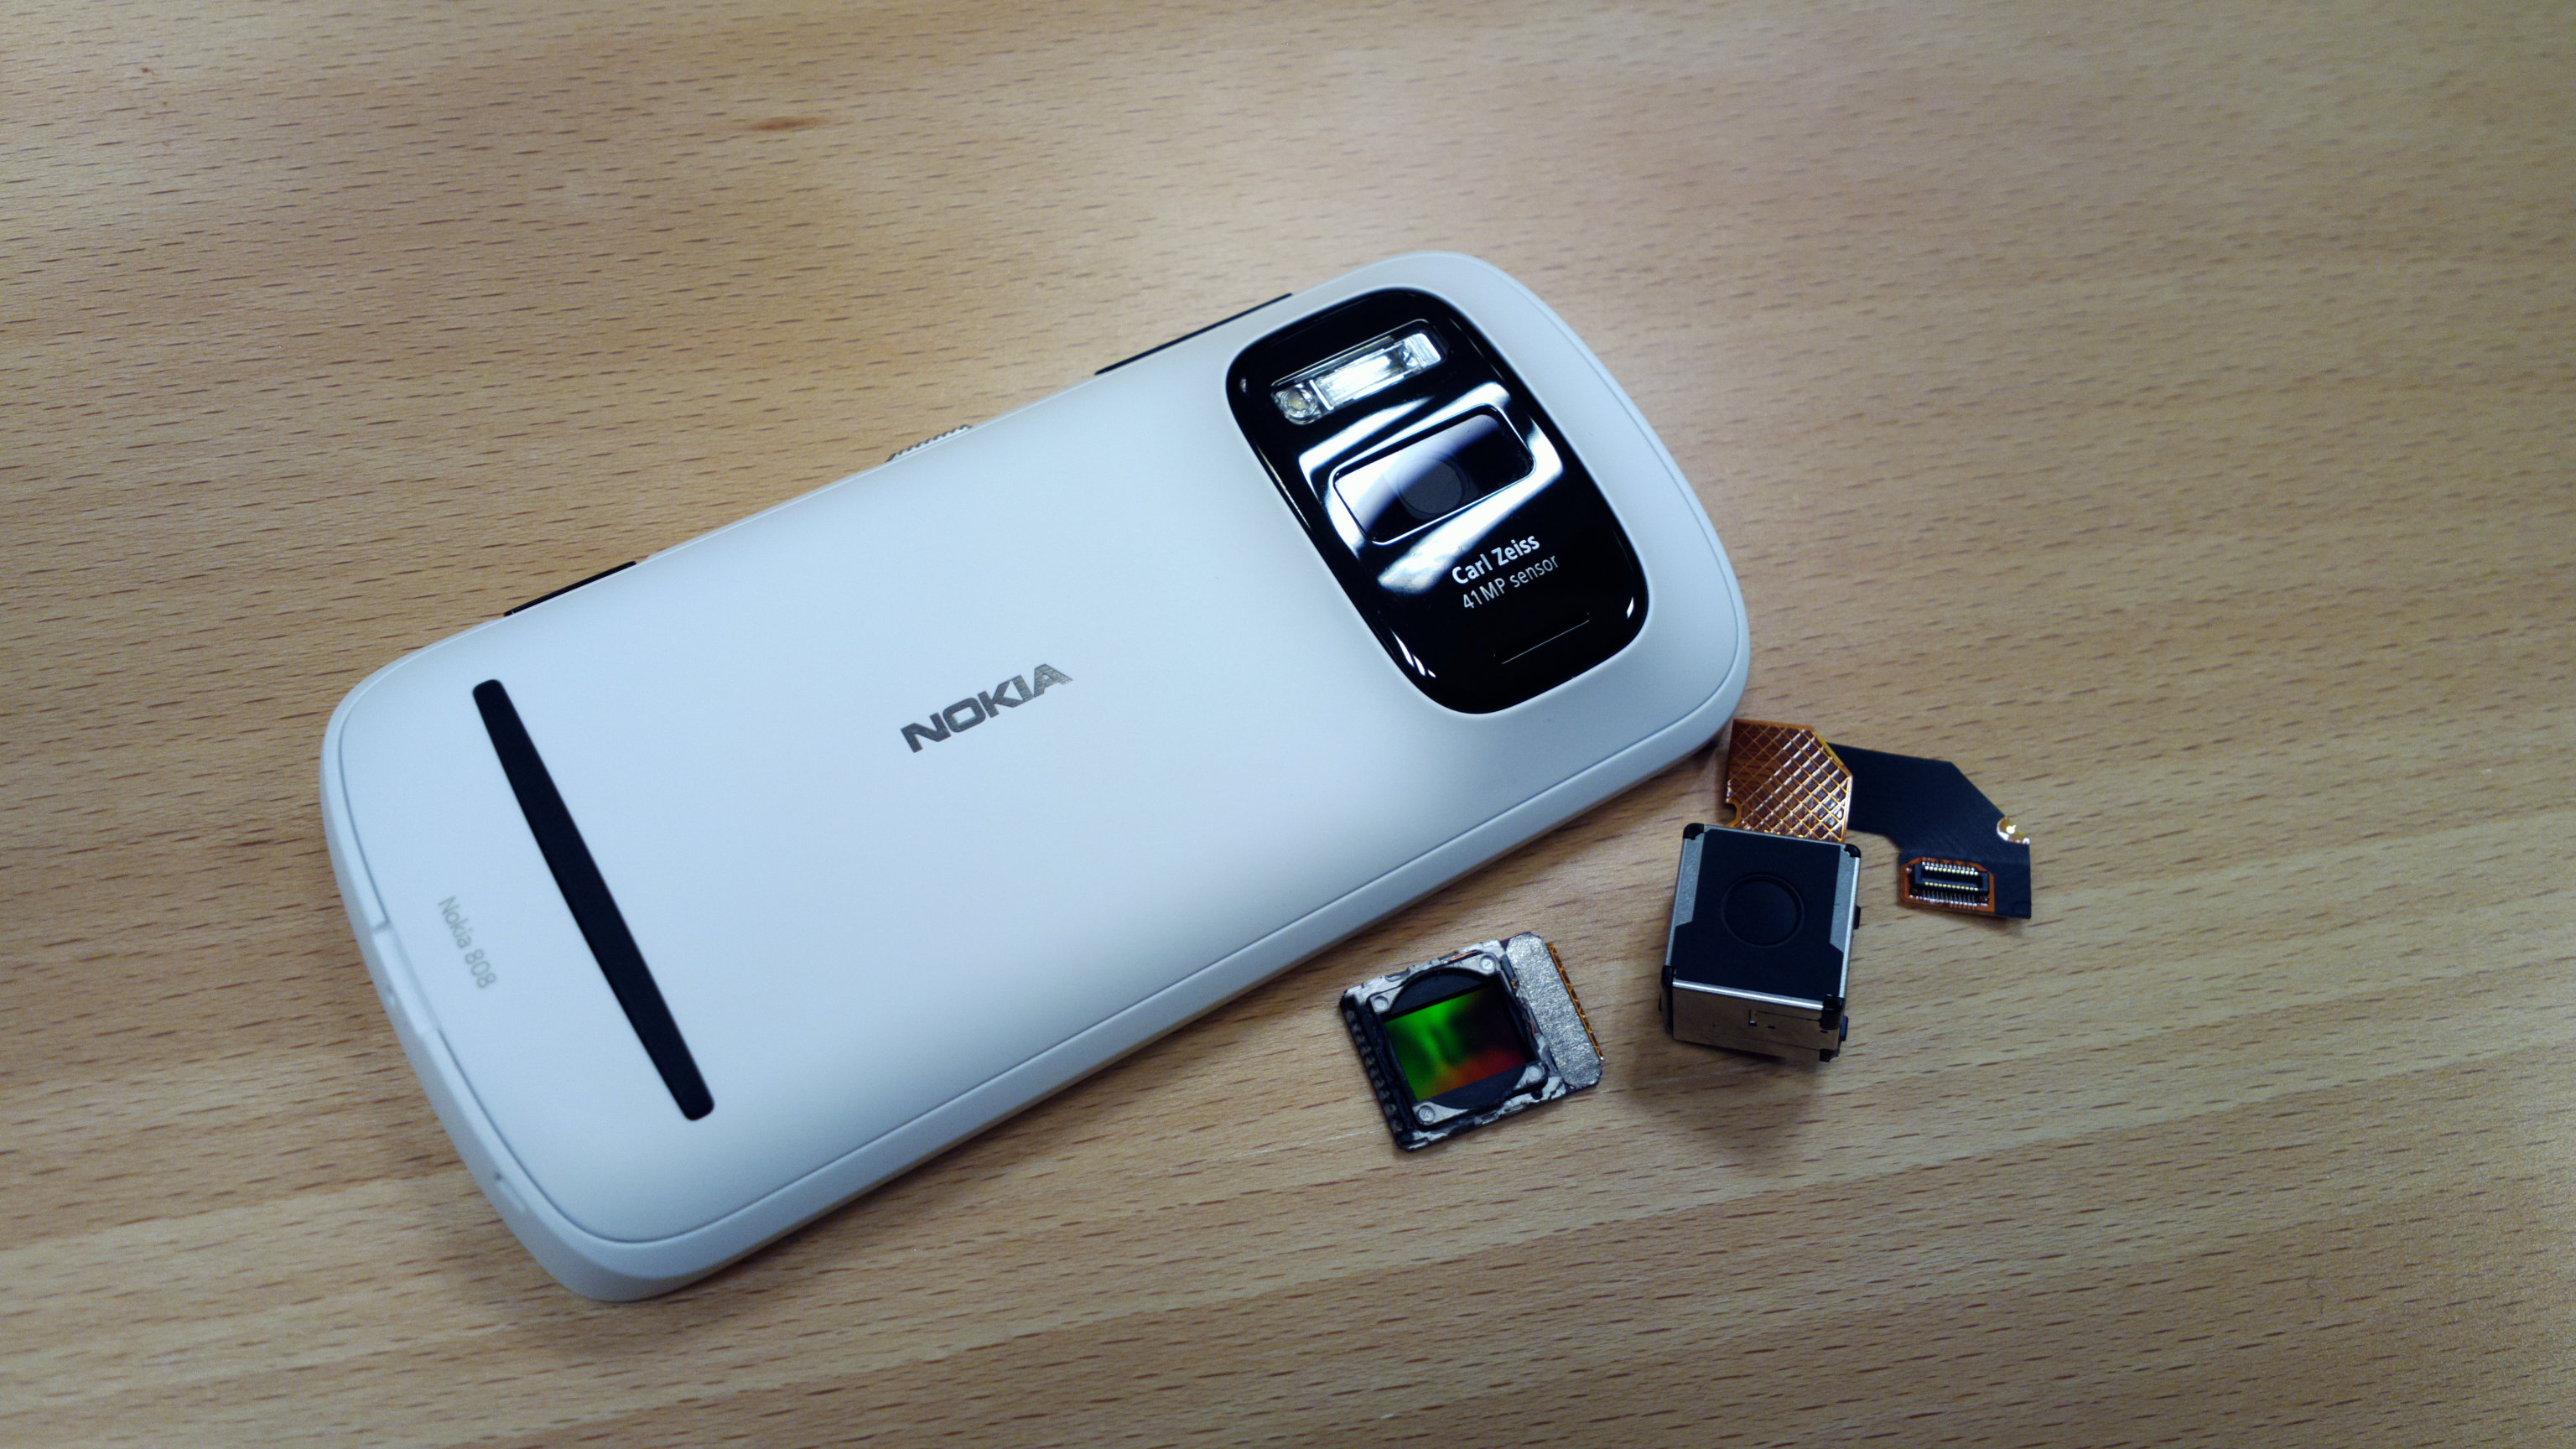 The Inside Story of Nokia's 41-Megapixel Camera Phone: Five Years in the Making